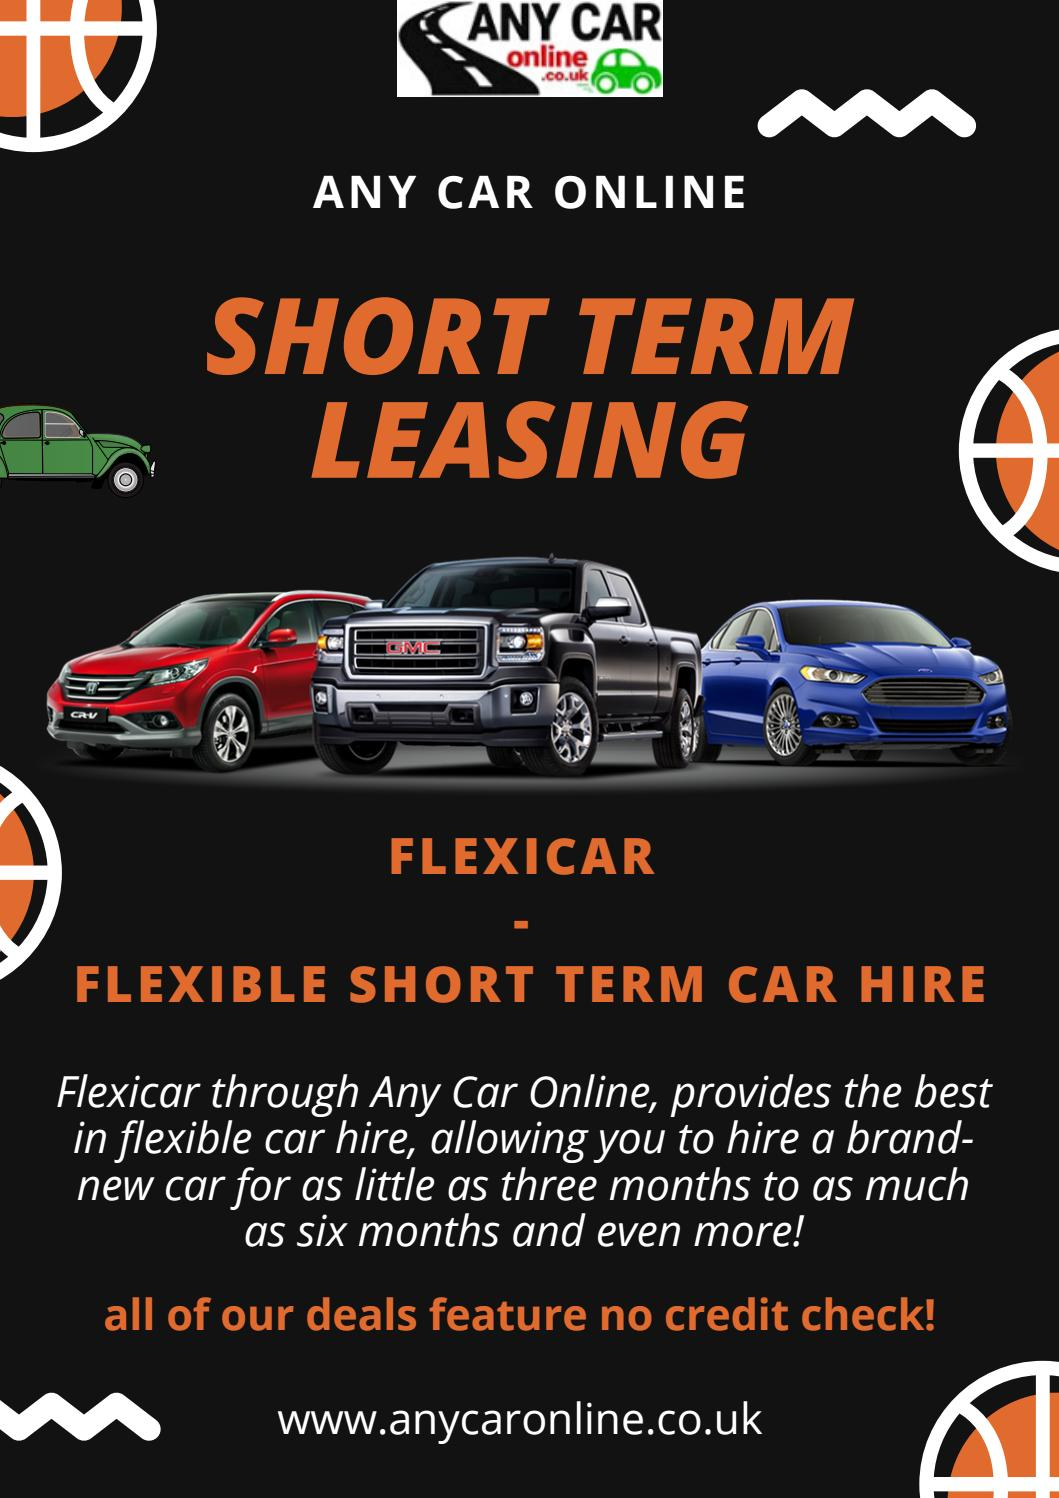 Short Term Car Lease >> Short Term Car Leasing Services With No Credit Check By Any